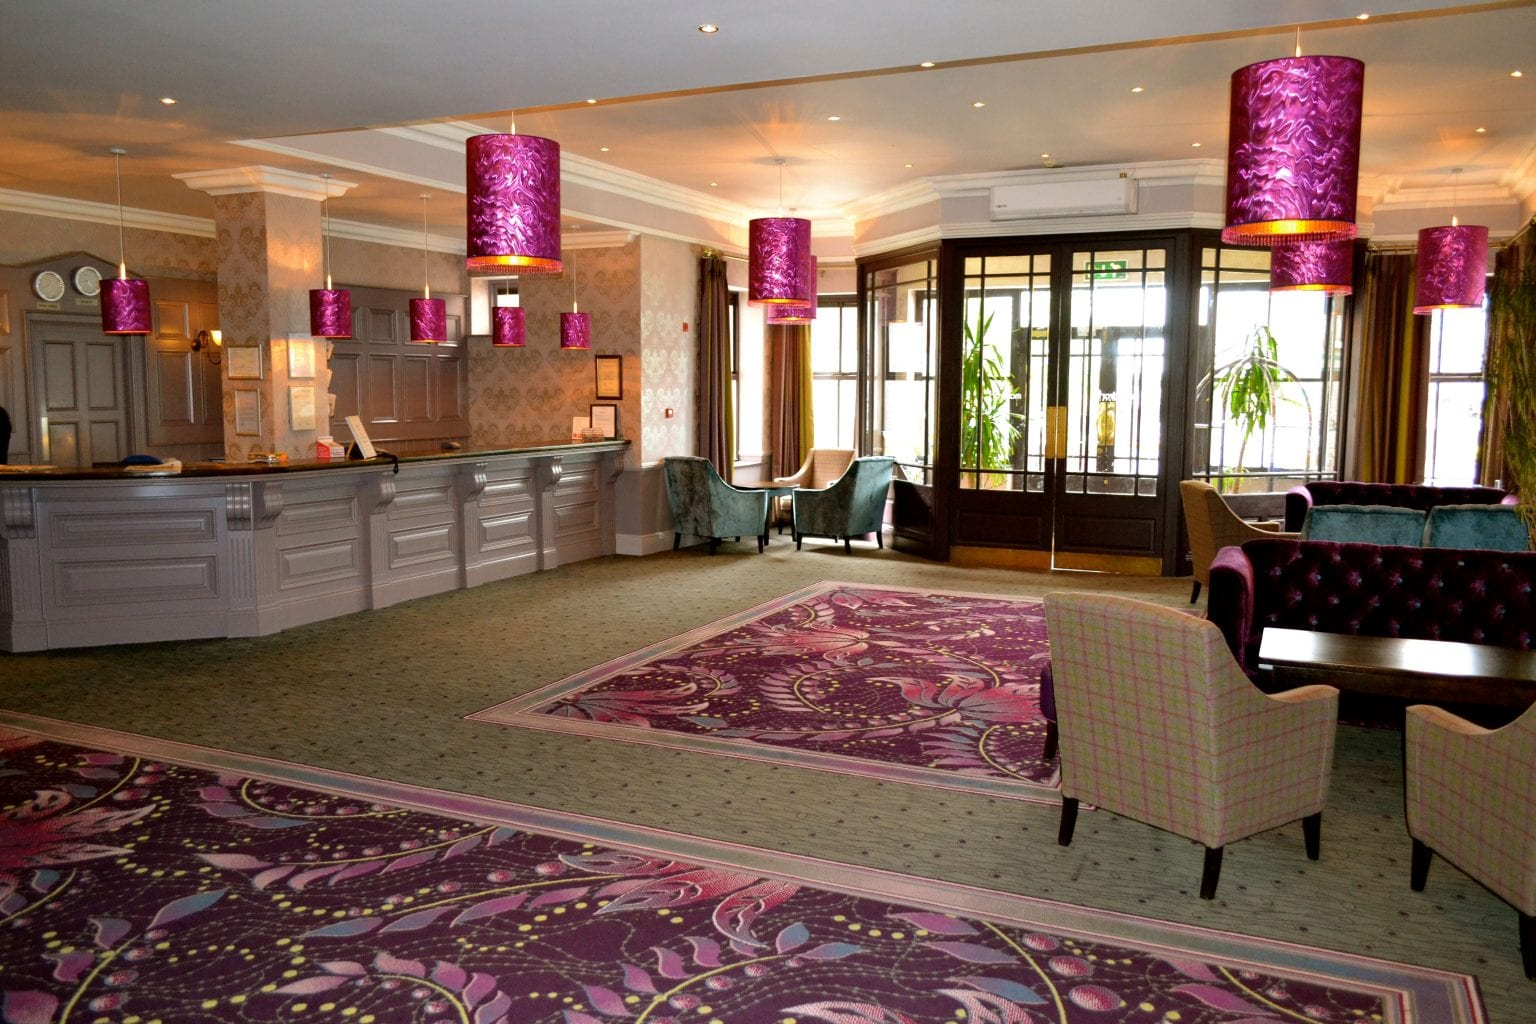 Spa Hotels In Galway City Centre